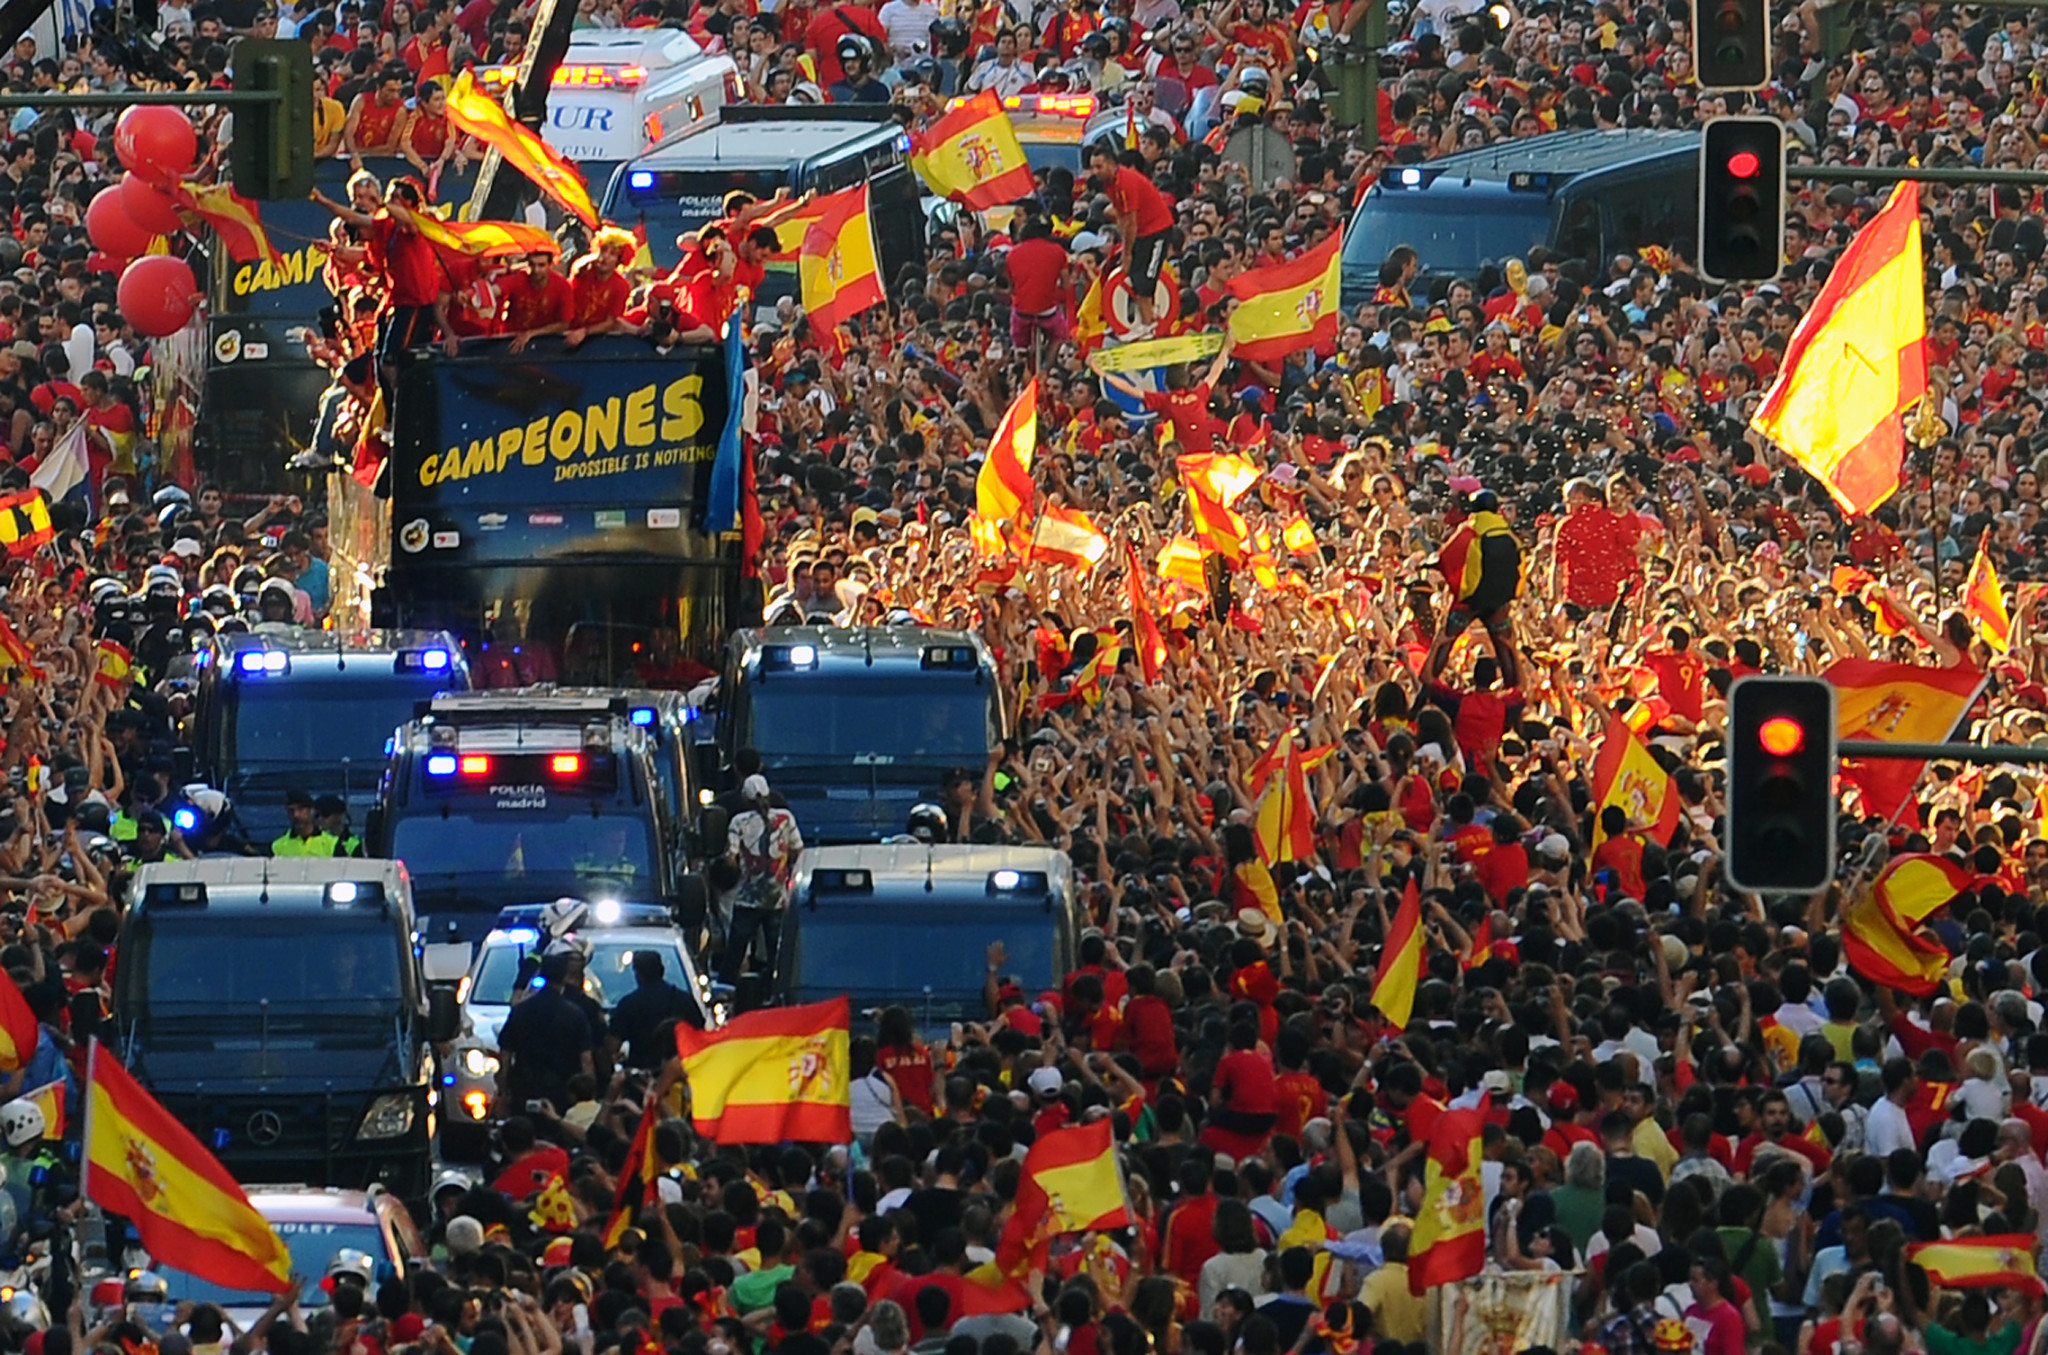 Spain's team parade through the streets after winning the 2010 FIFA World Cup ©Getty Images